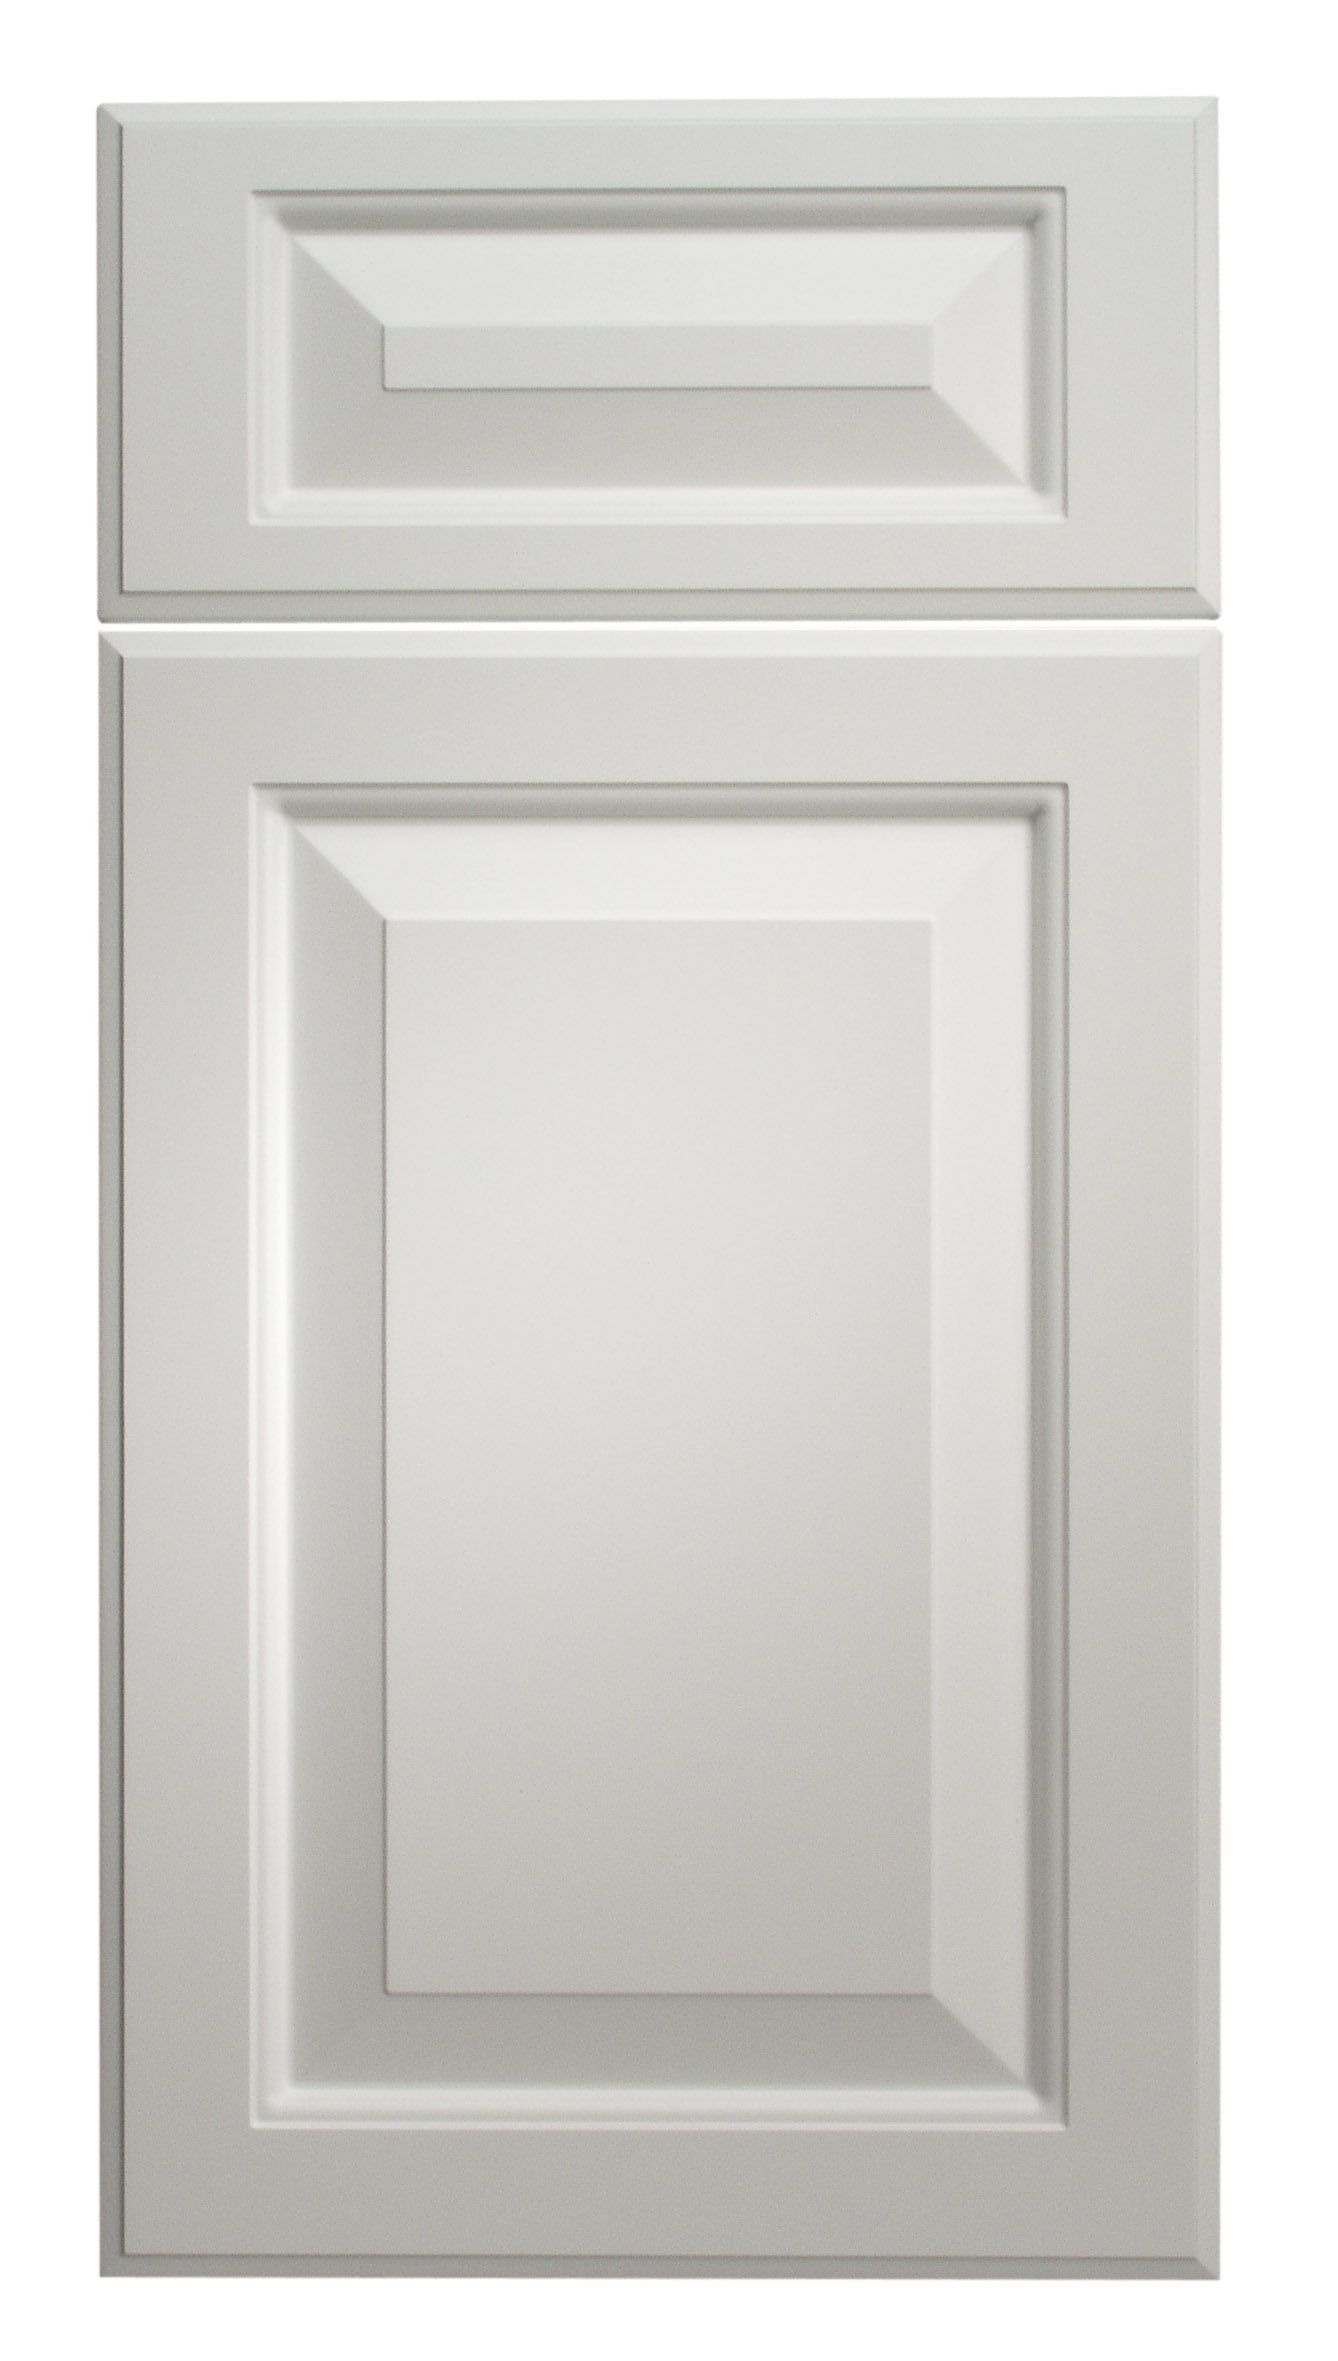 Replacement Kitchen Cabinet Doors White Lovely A Wellington Door Style with A Snow White Color